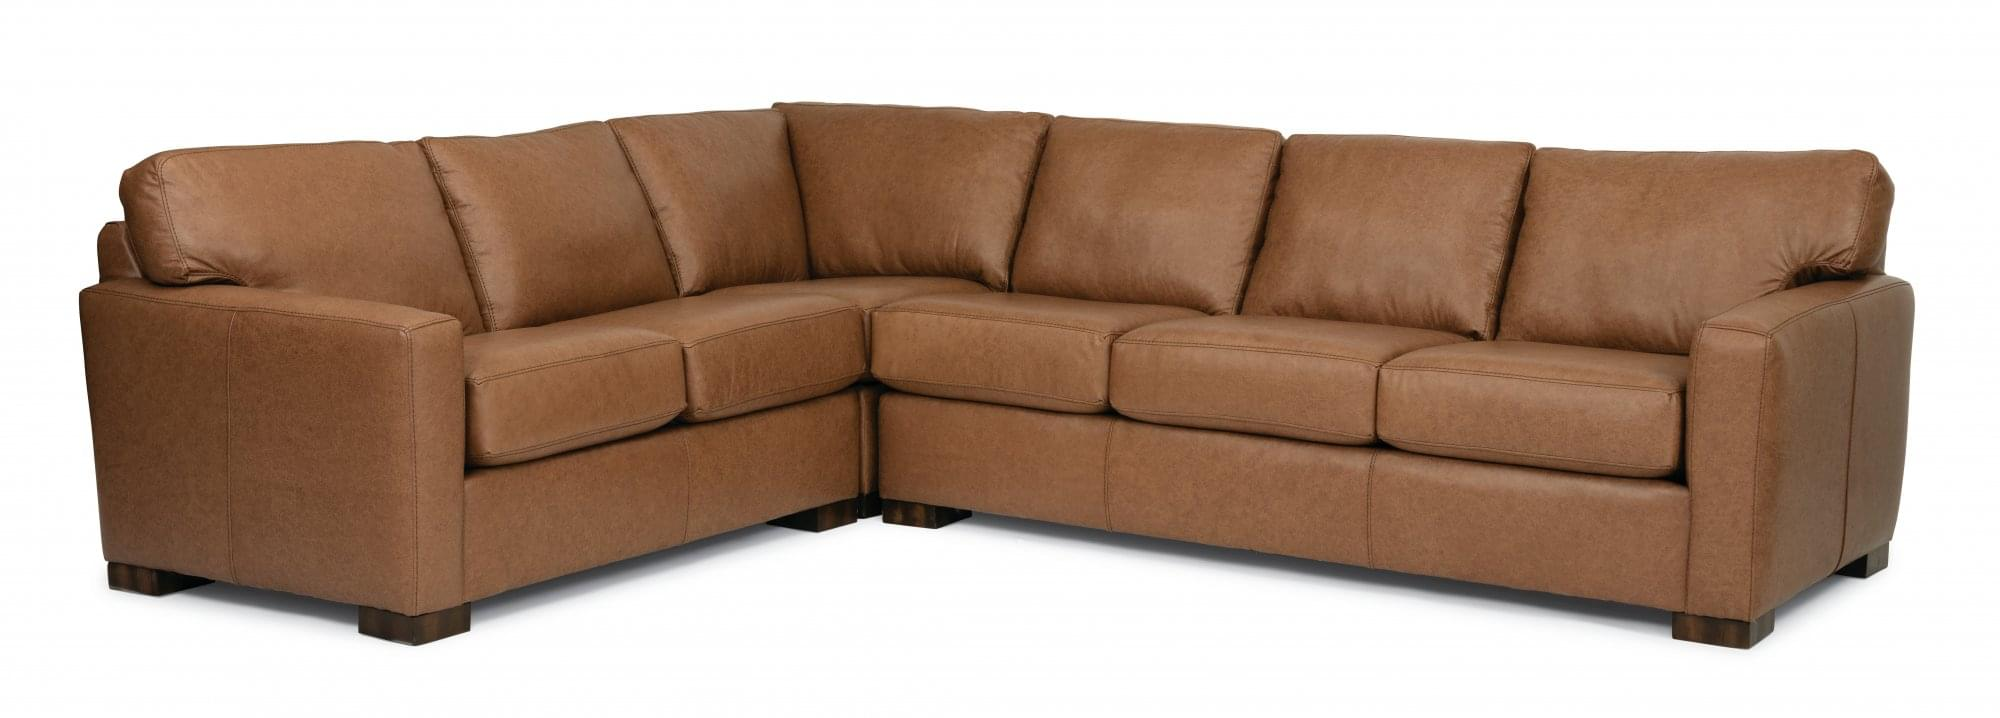 Flexsteel Bryant sectional at Mums Place Furniture Monterey CA